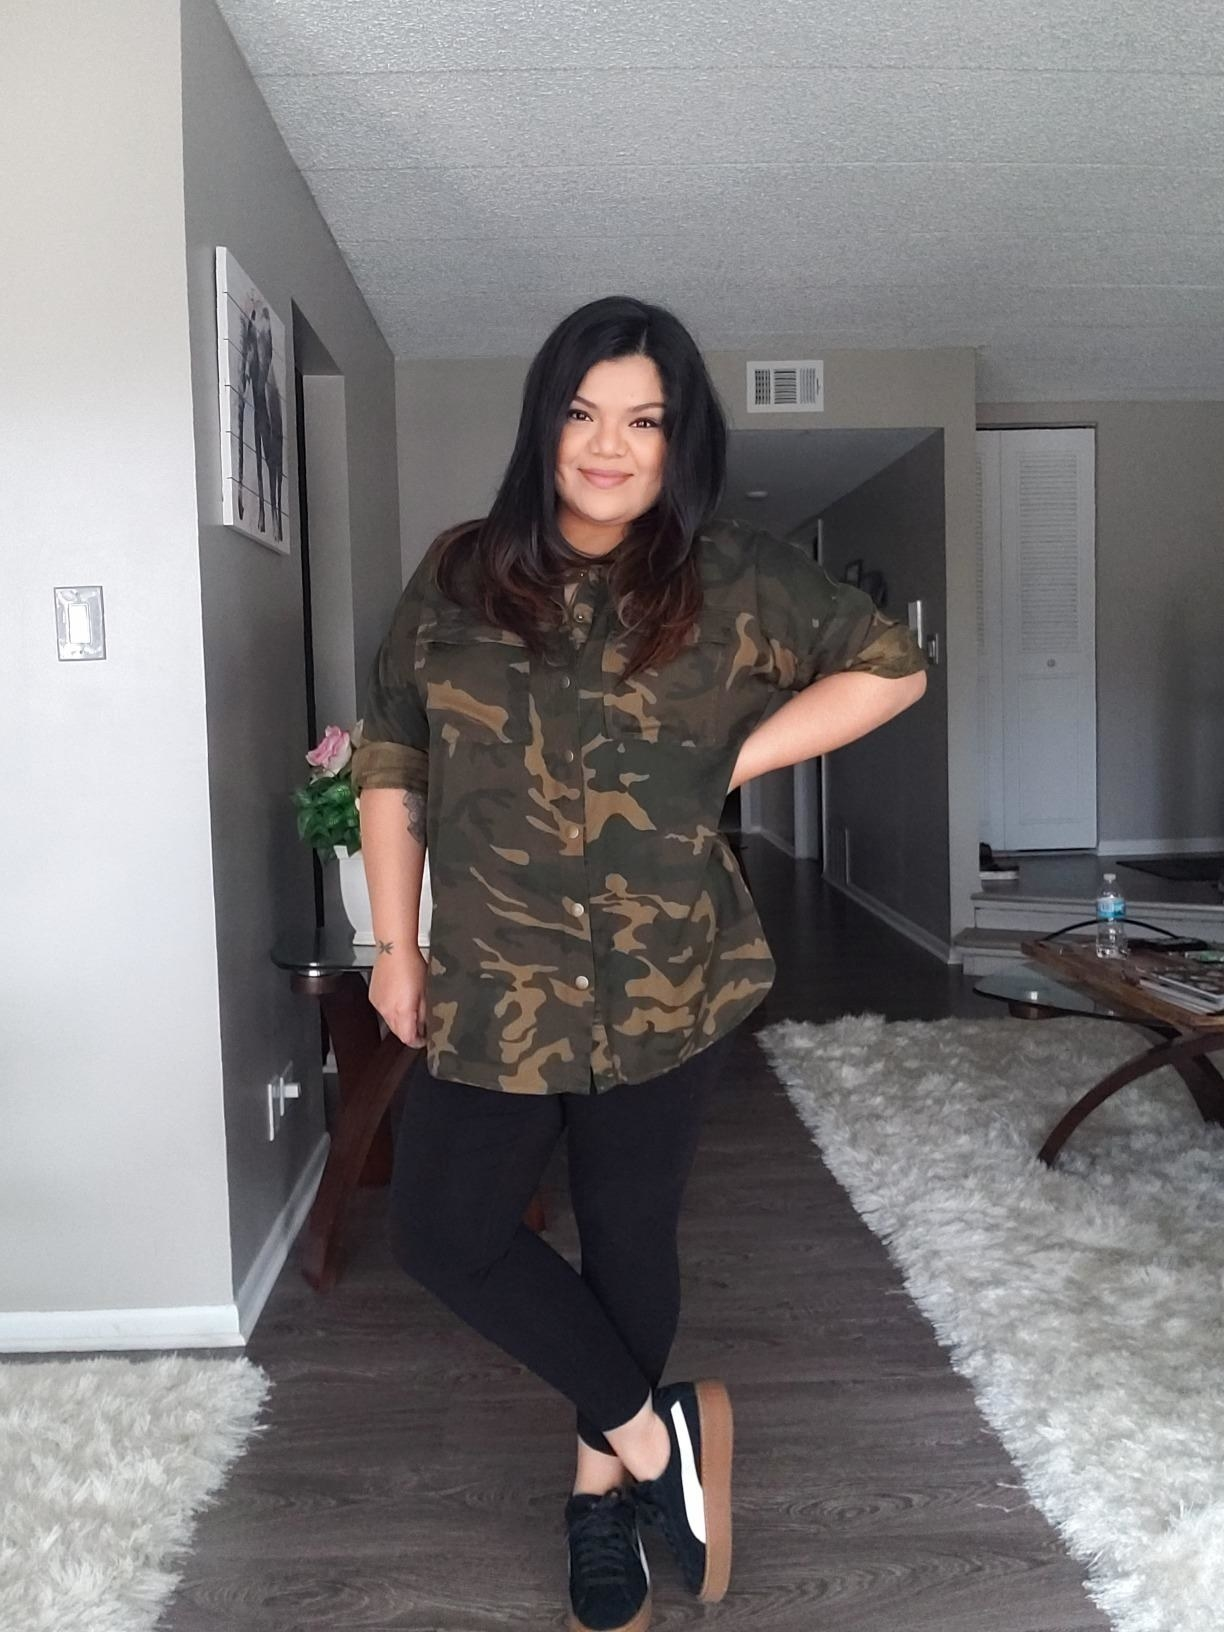 Reviewer wearing the shirt with pockets on the chest in brown and tan camo print